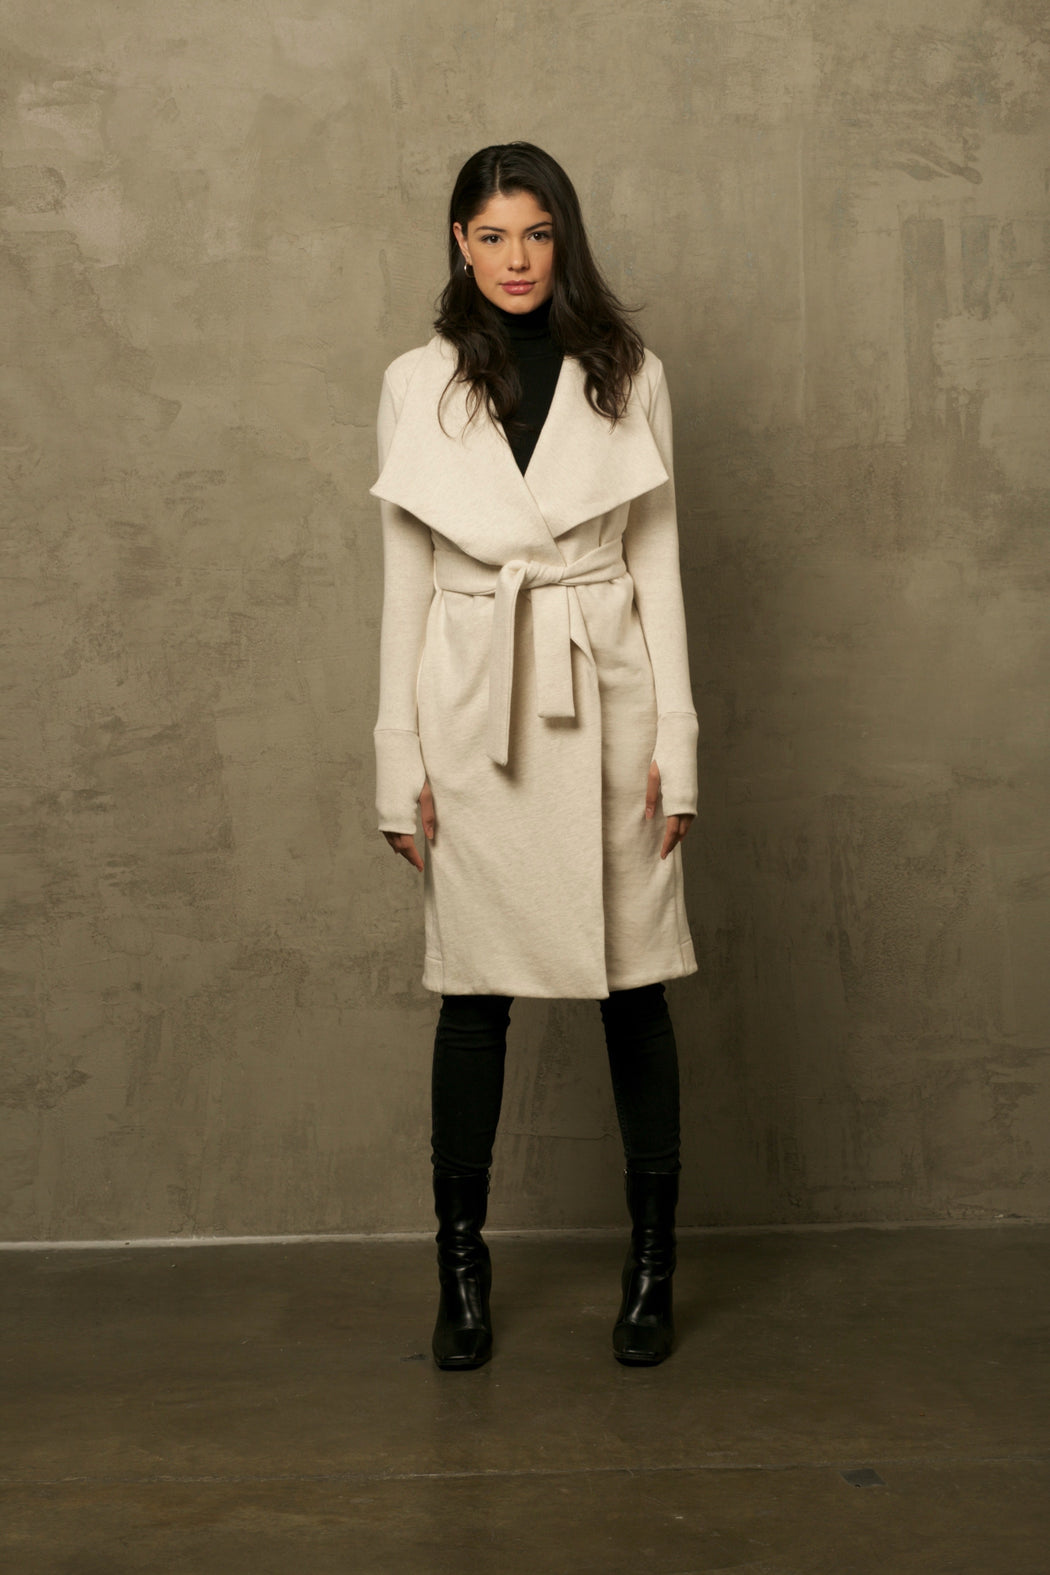 THE OATMEAL WRAP COAT